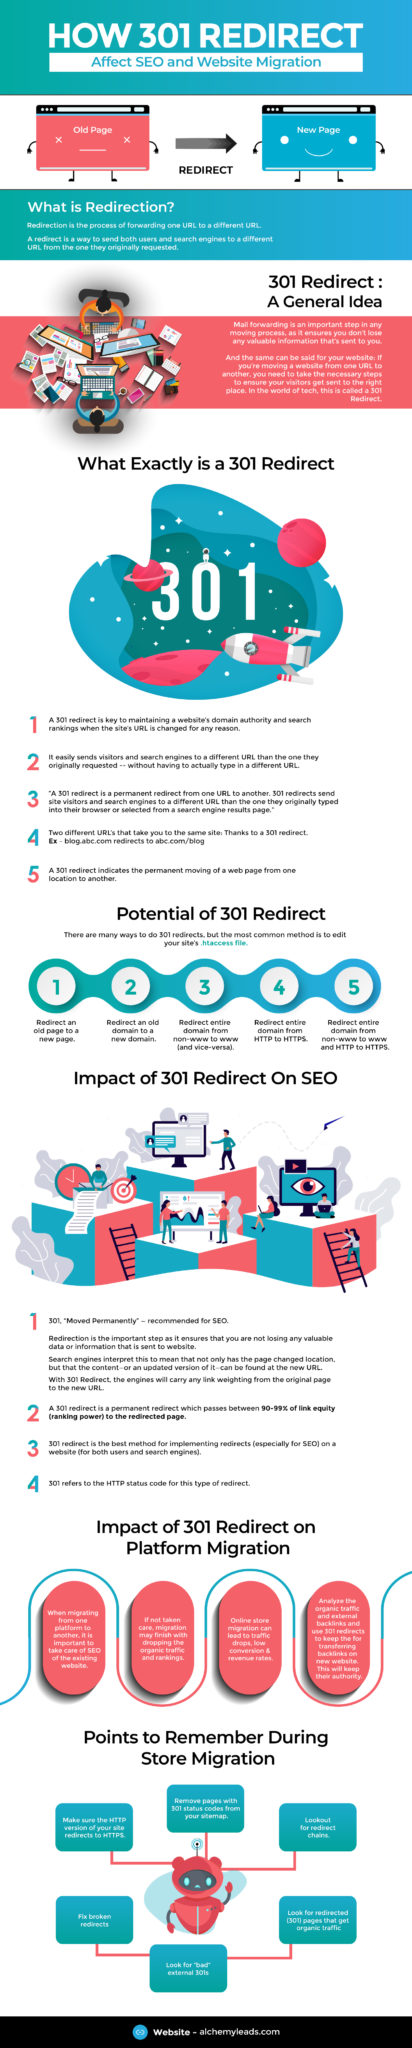 An SEO Guide to Proper 301 Redirect Planning & Implementation During Major Site Migrations to Avoid Traffic Losses